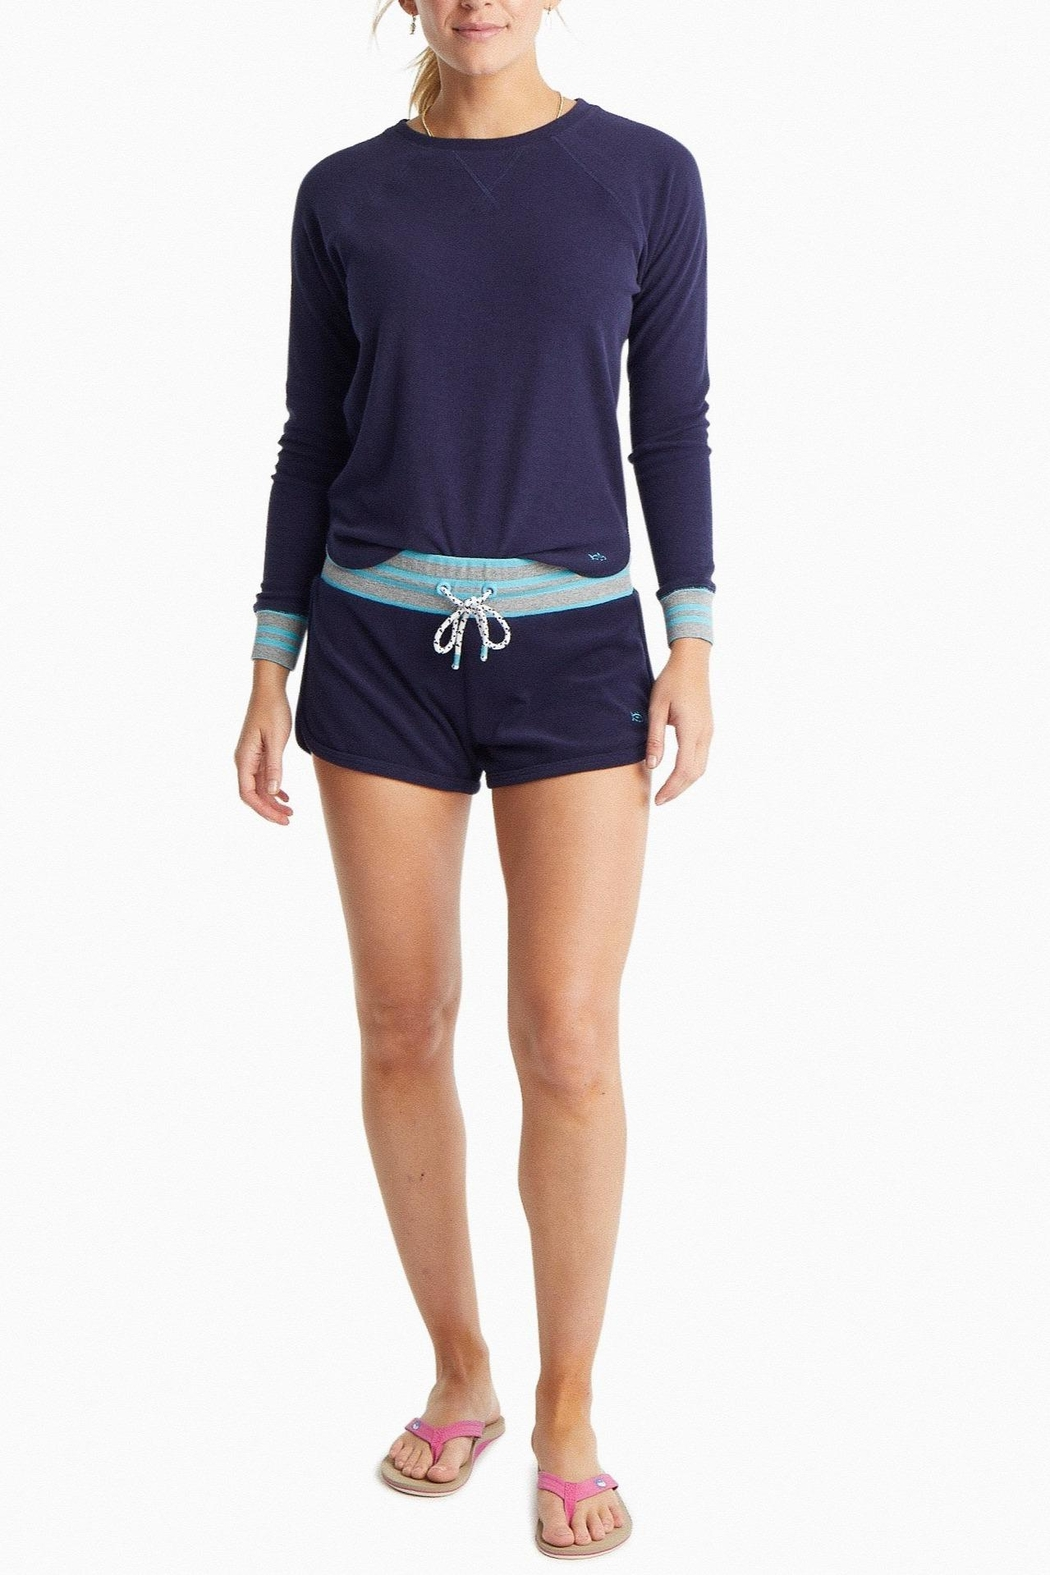 Southern Tide Hayden Crew Pullover - Main Image